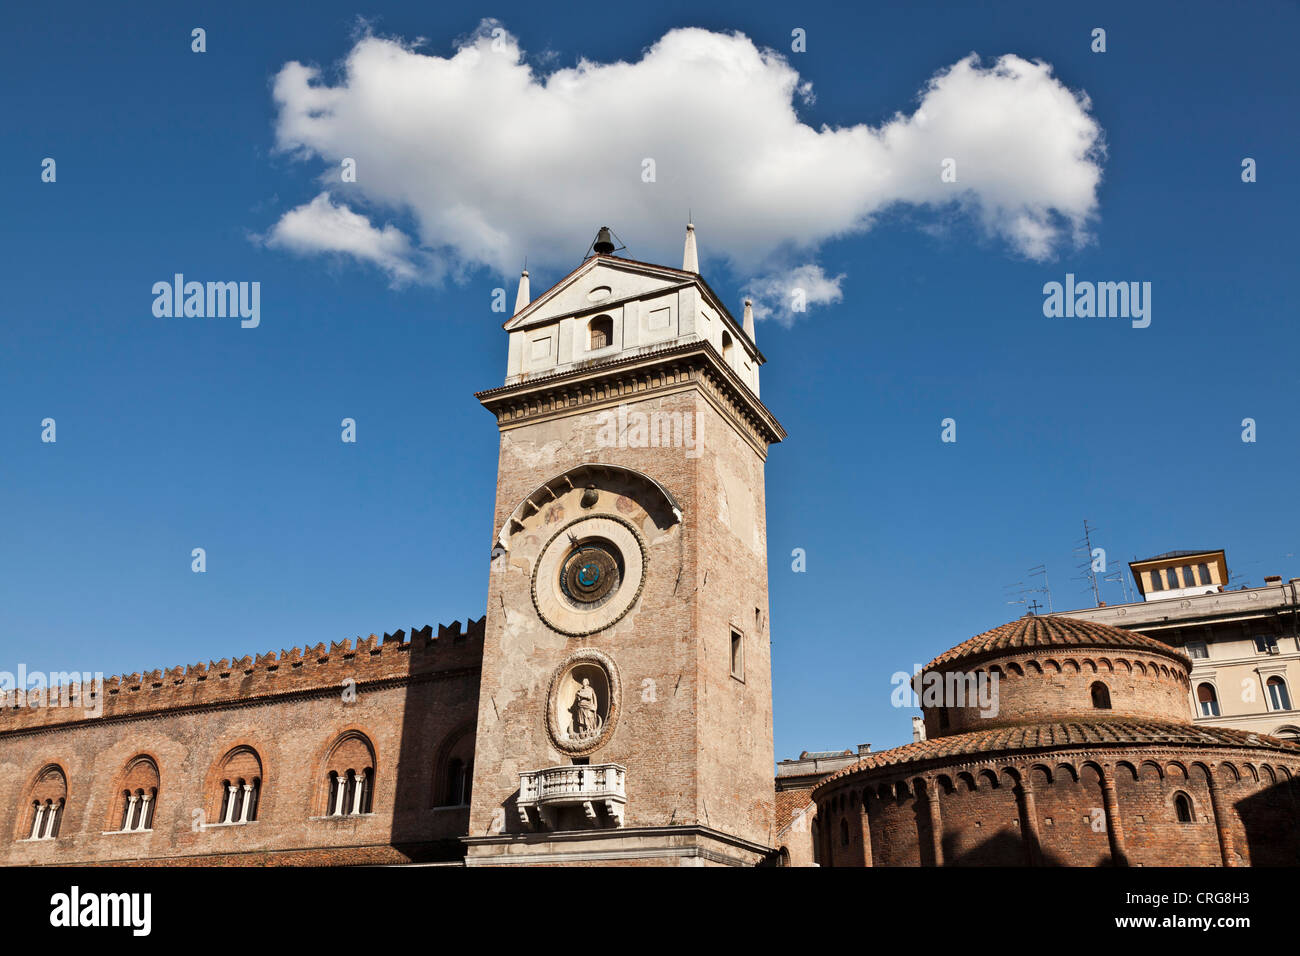 Ornate clock tower in town square - Stock Image